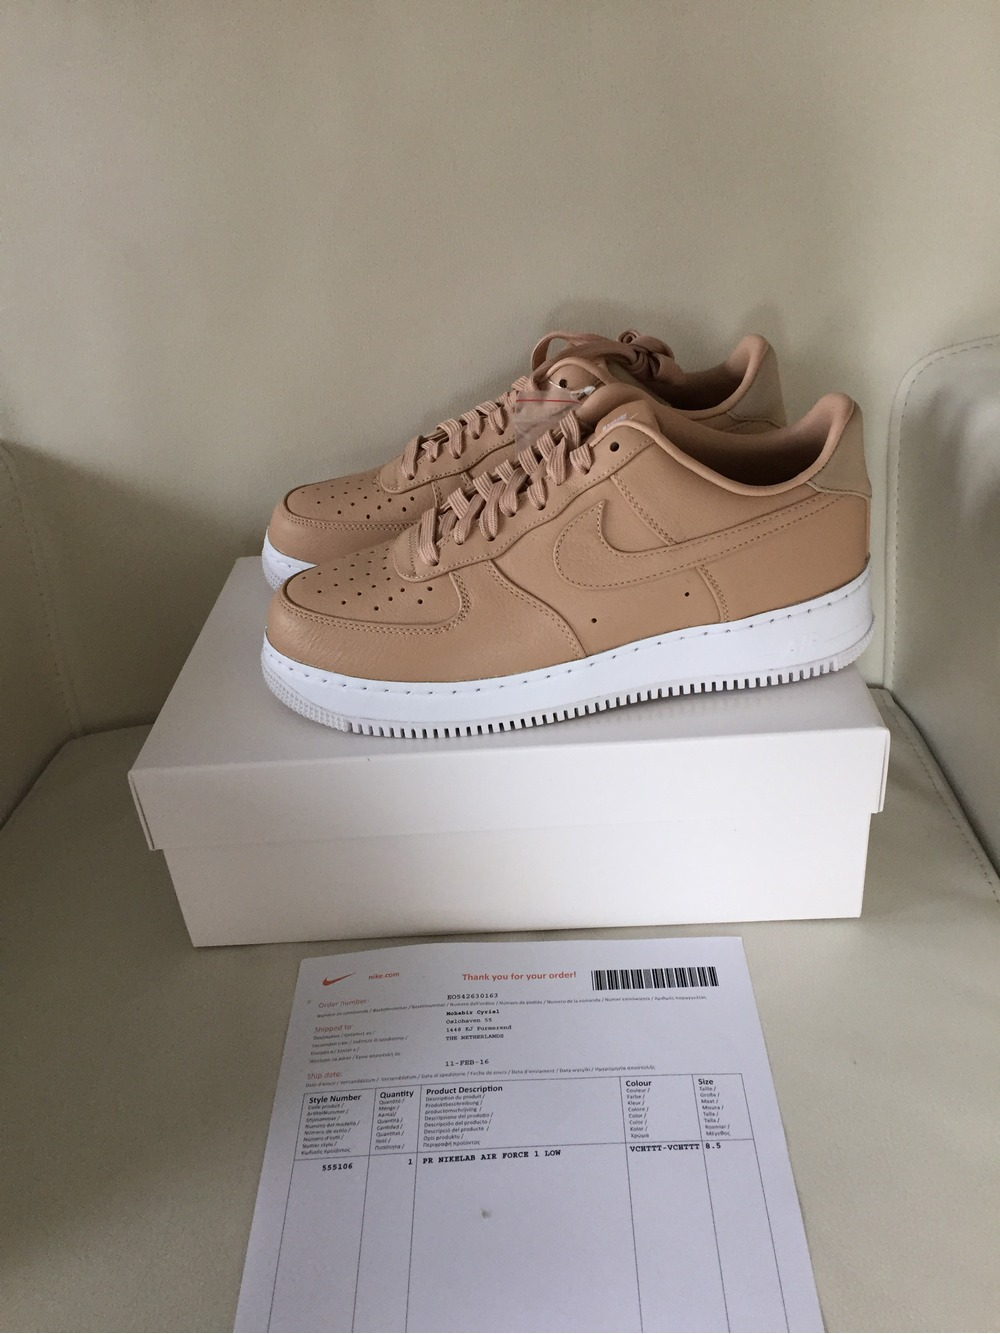 best website 4b086 37995 ... 1 Low Vachetta Tan Nike Air Force Vachetta Tan Low ...